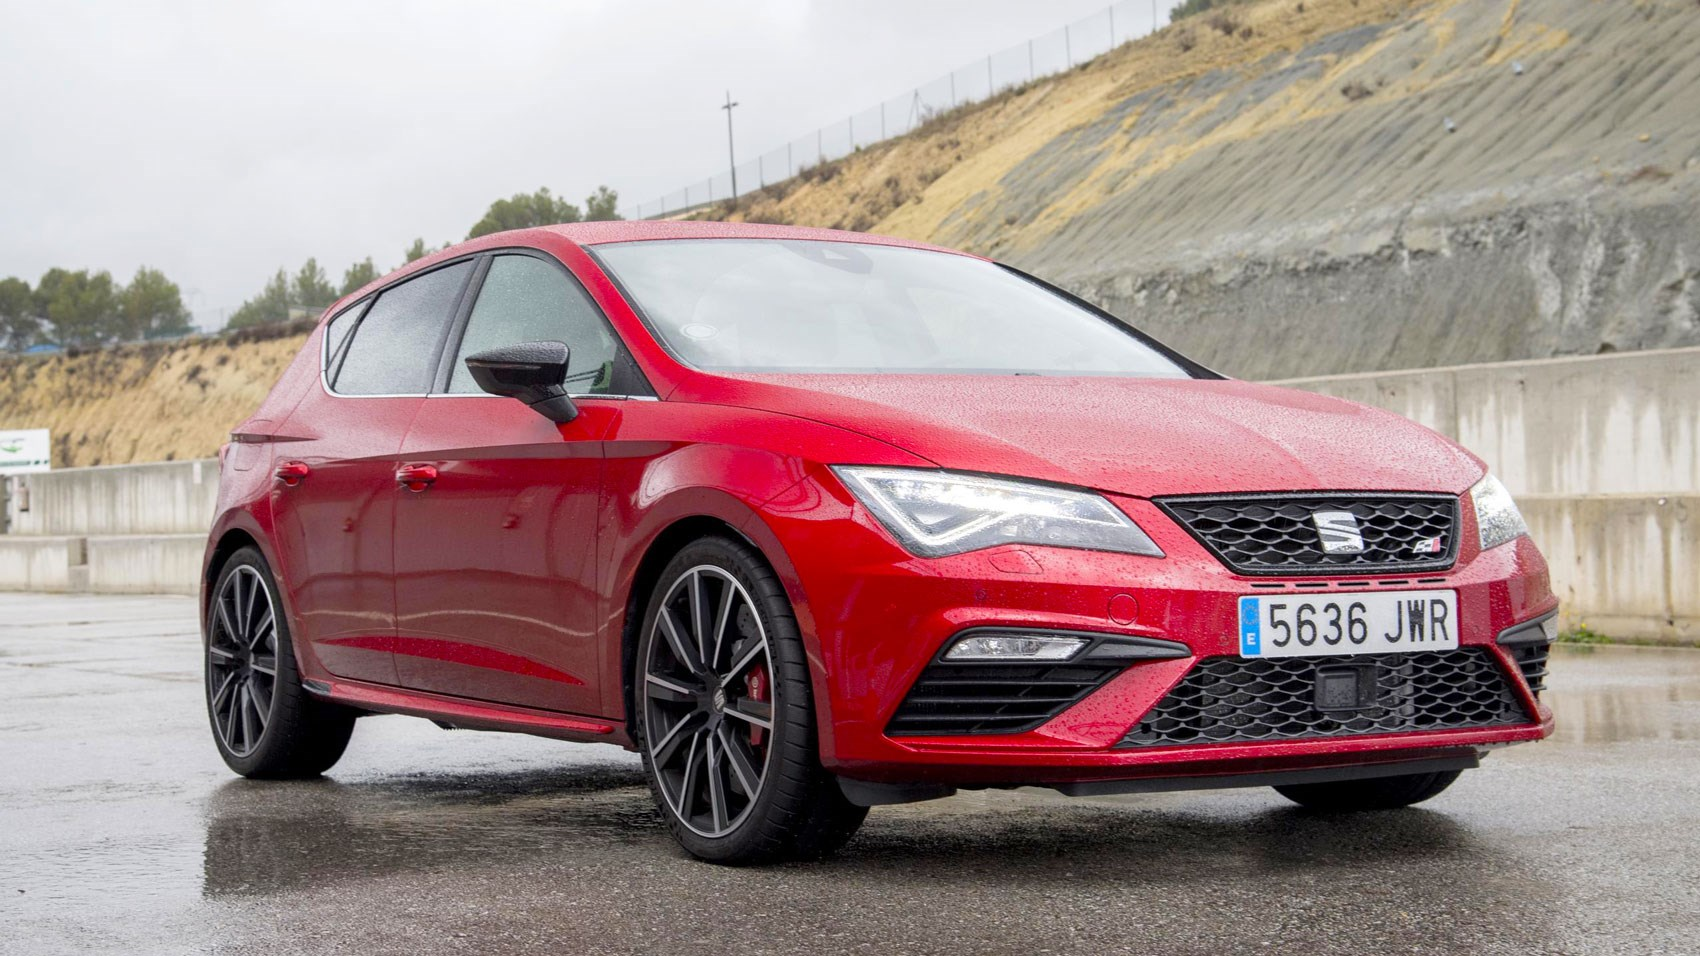 The new Seat Leon Cupra 300: a Golf R on the not-so-cheap?